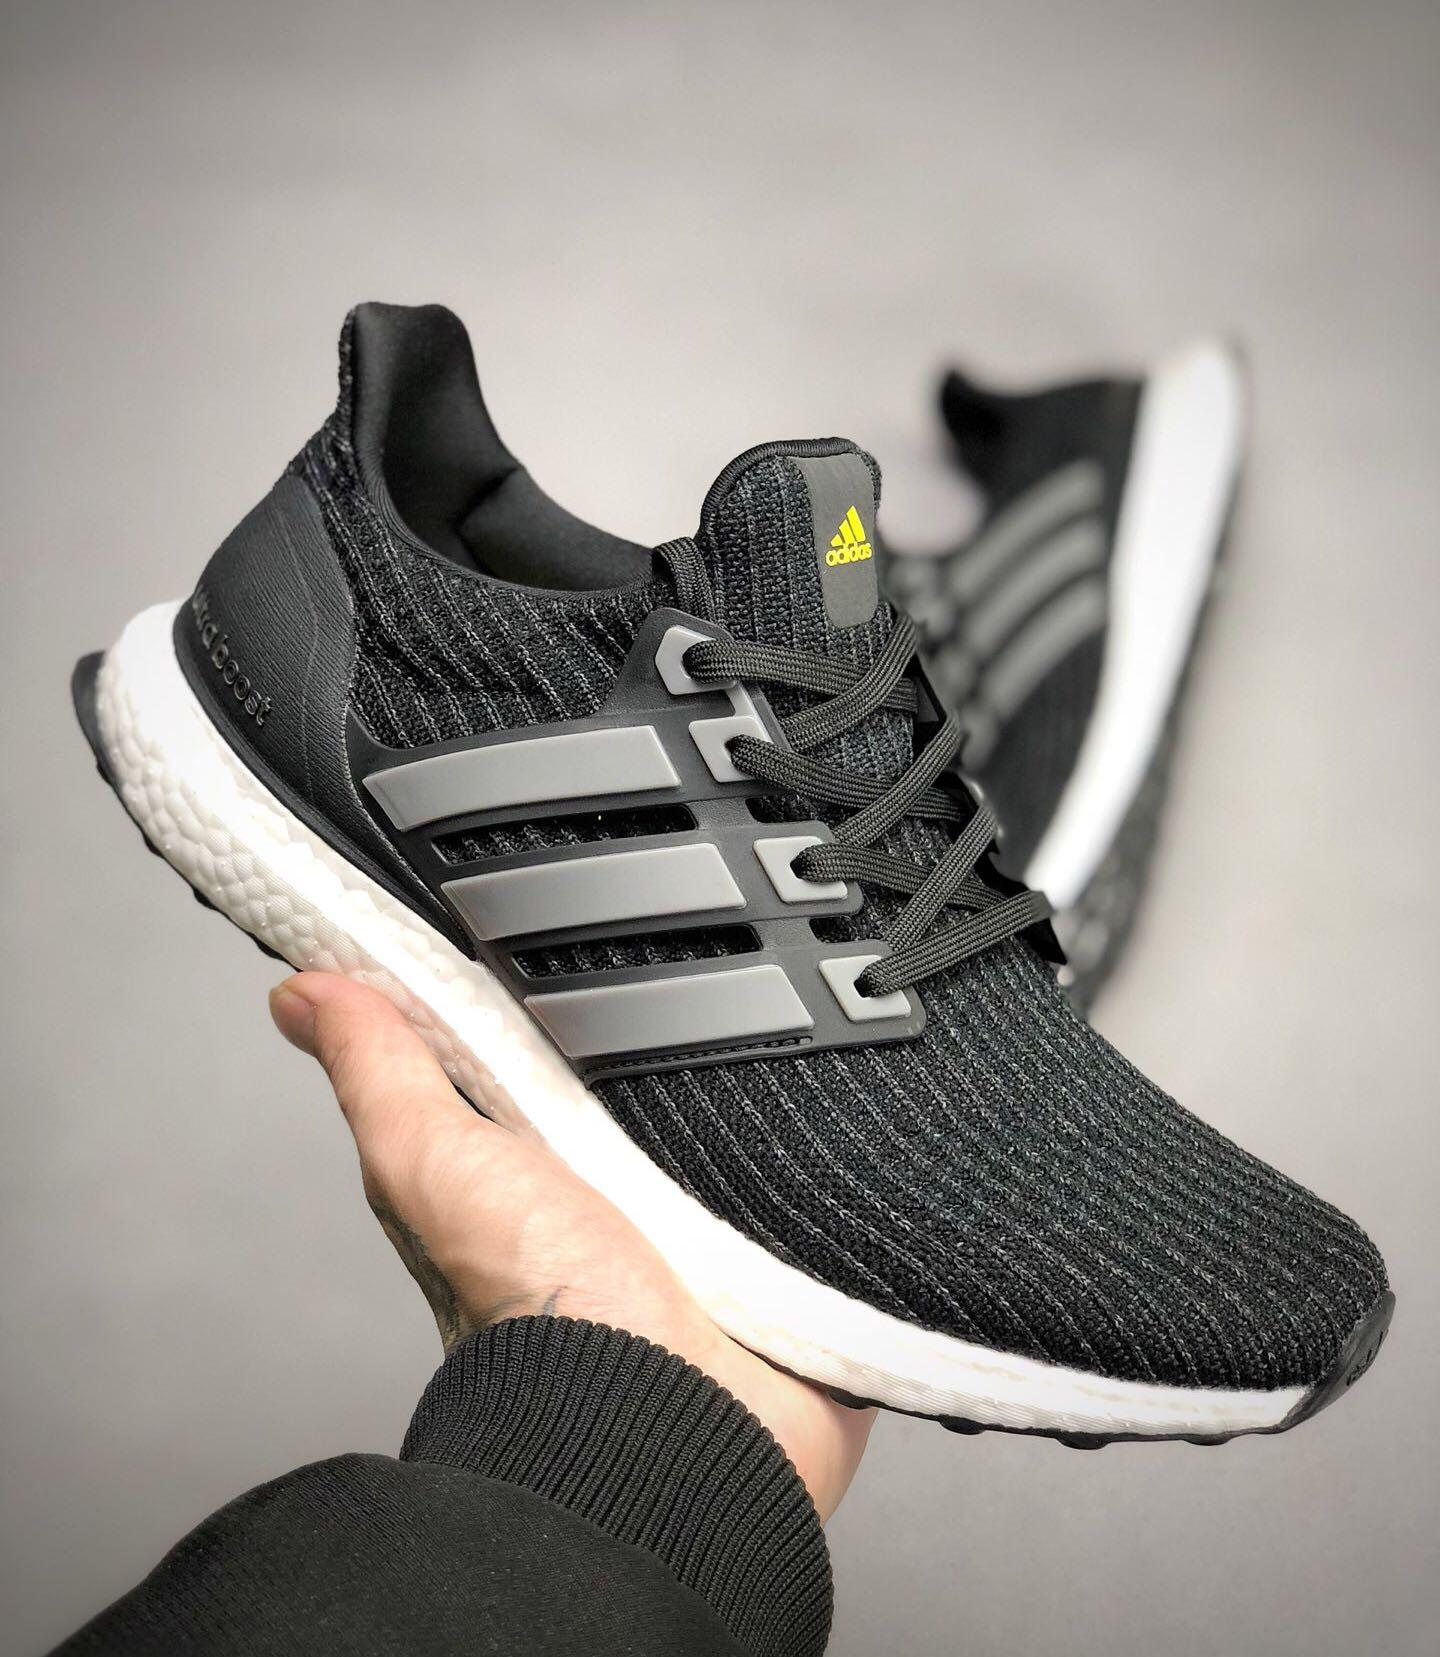 hot sale online 5a402 7cf39 Adidas Ultra Boost 4.0 3M reflections 5th Anniversary ...